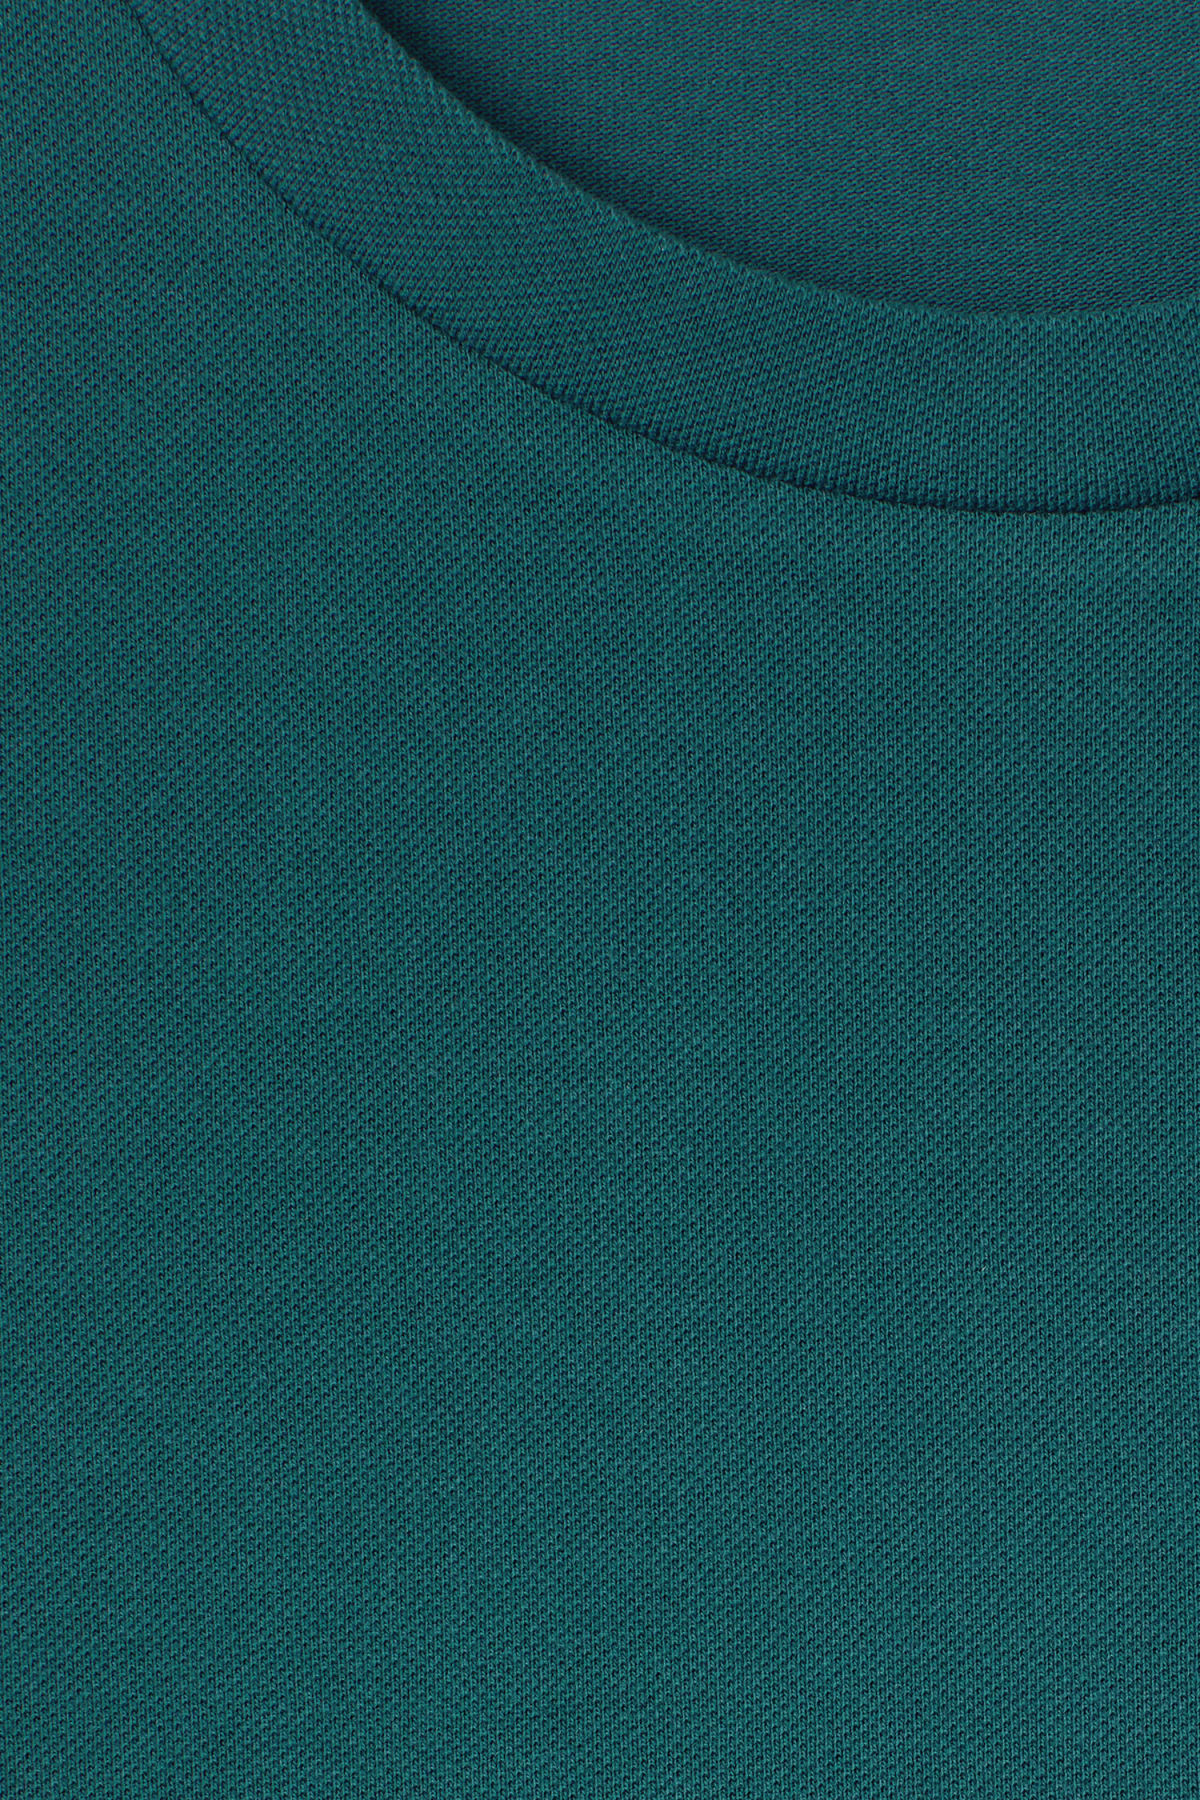 Detailed image of Weekday tennis t-shirt in turquoise